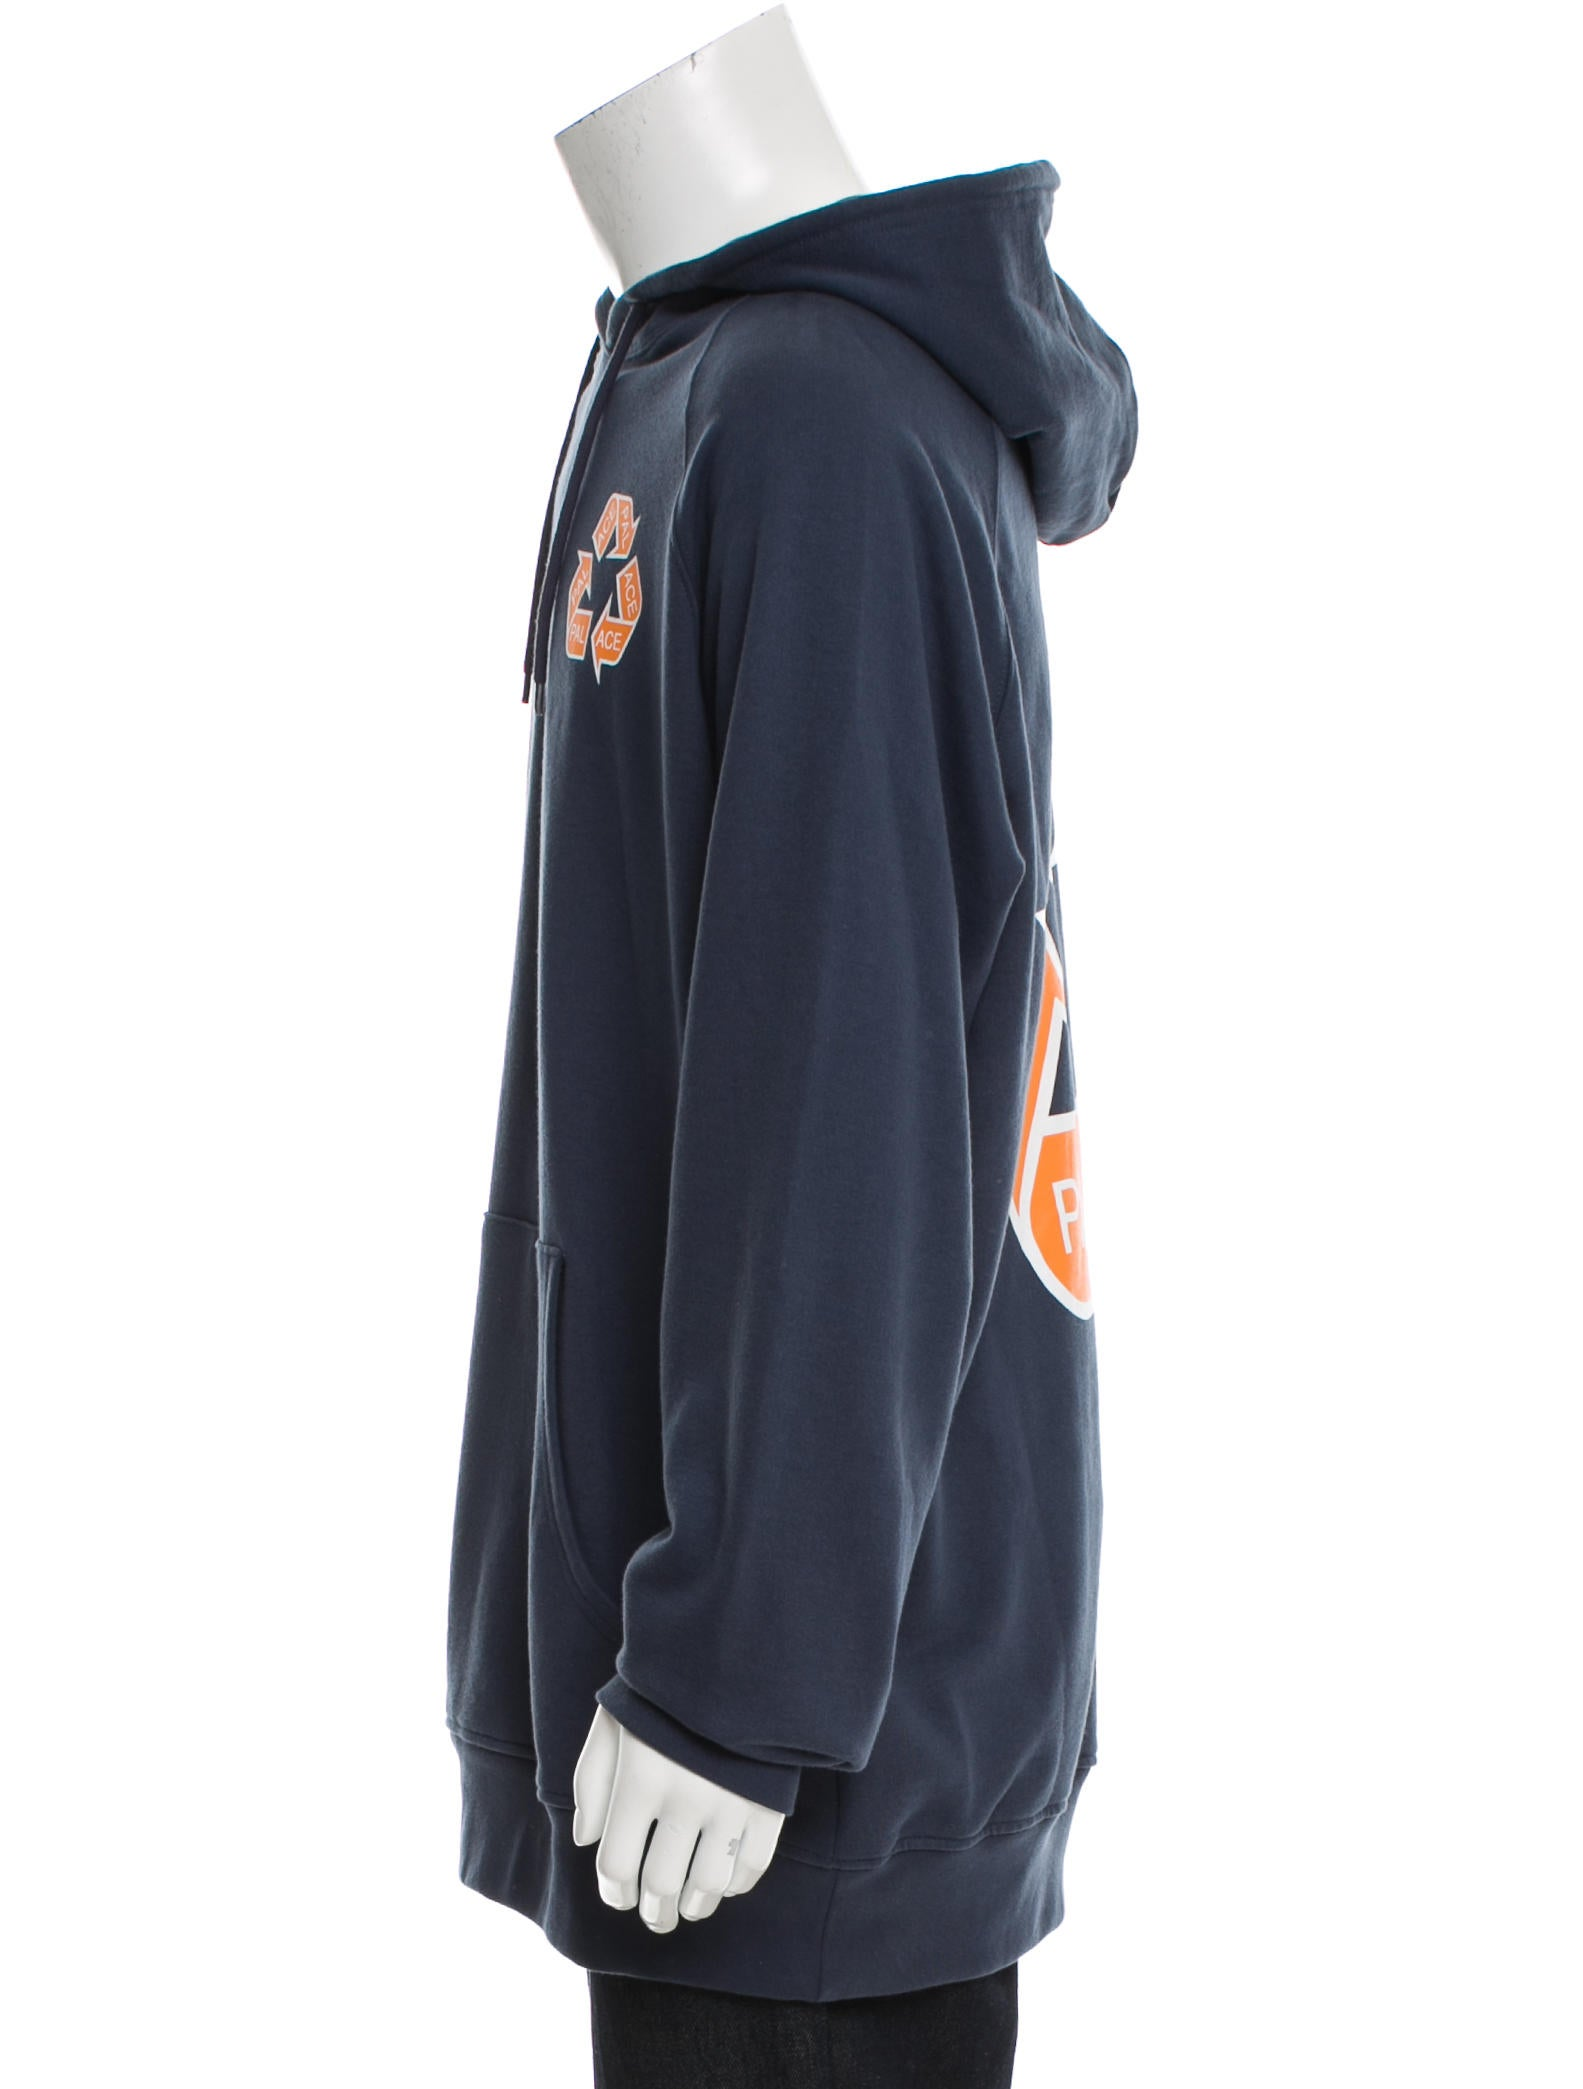 Graphic pullover hoodies